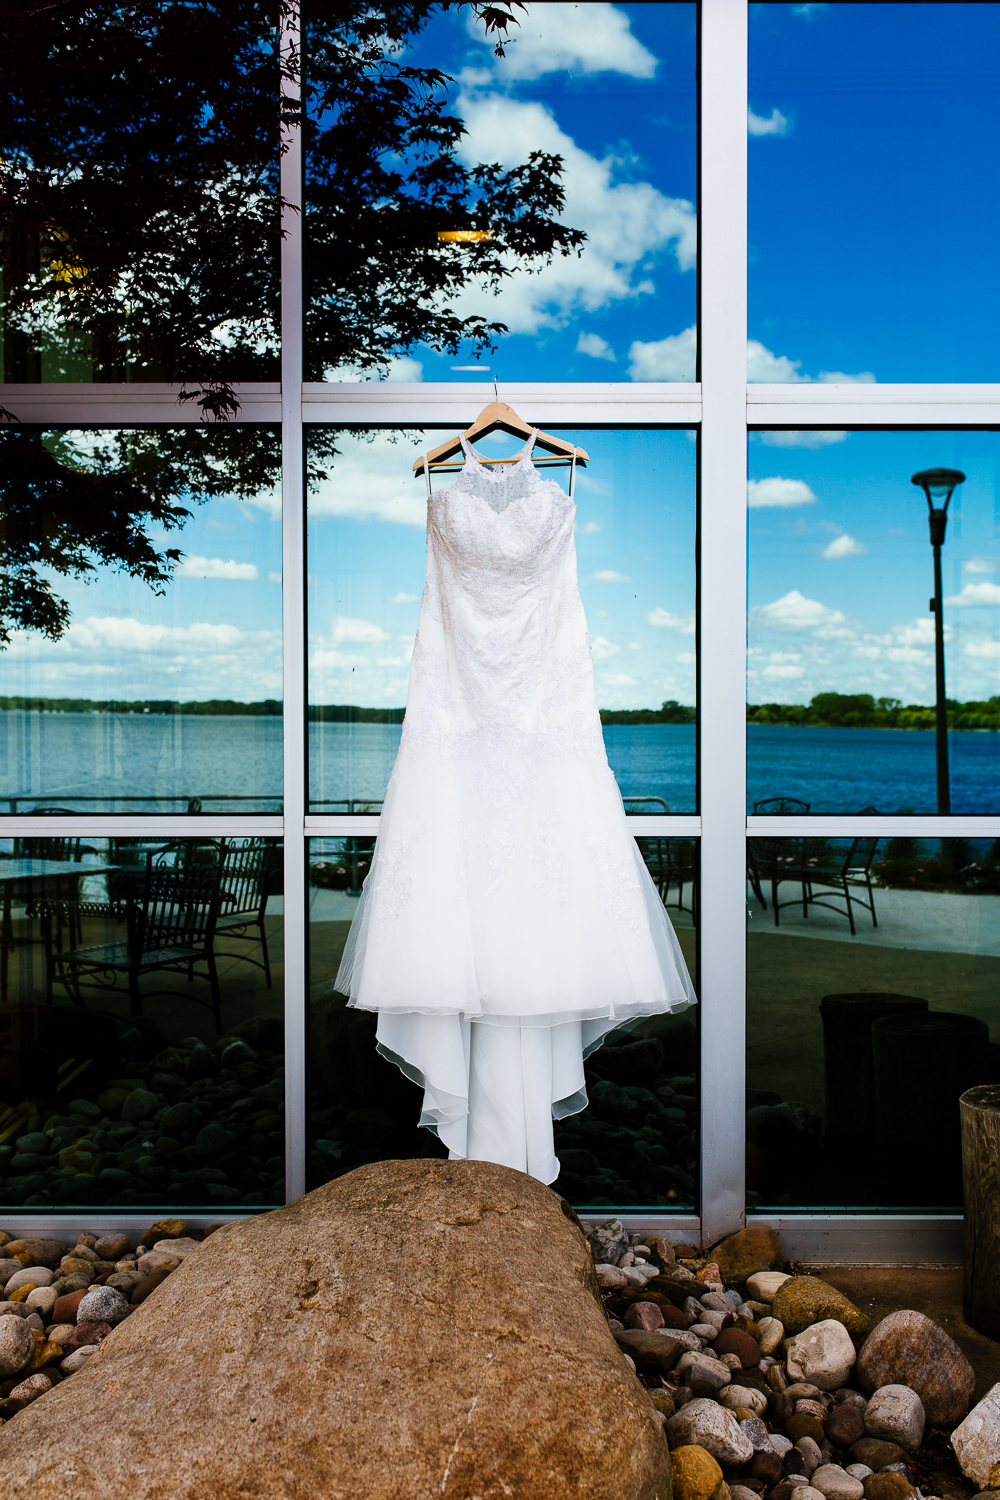 White wedding gown hanging on reflective windows.